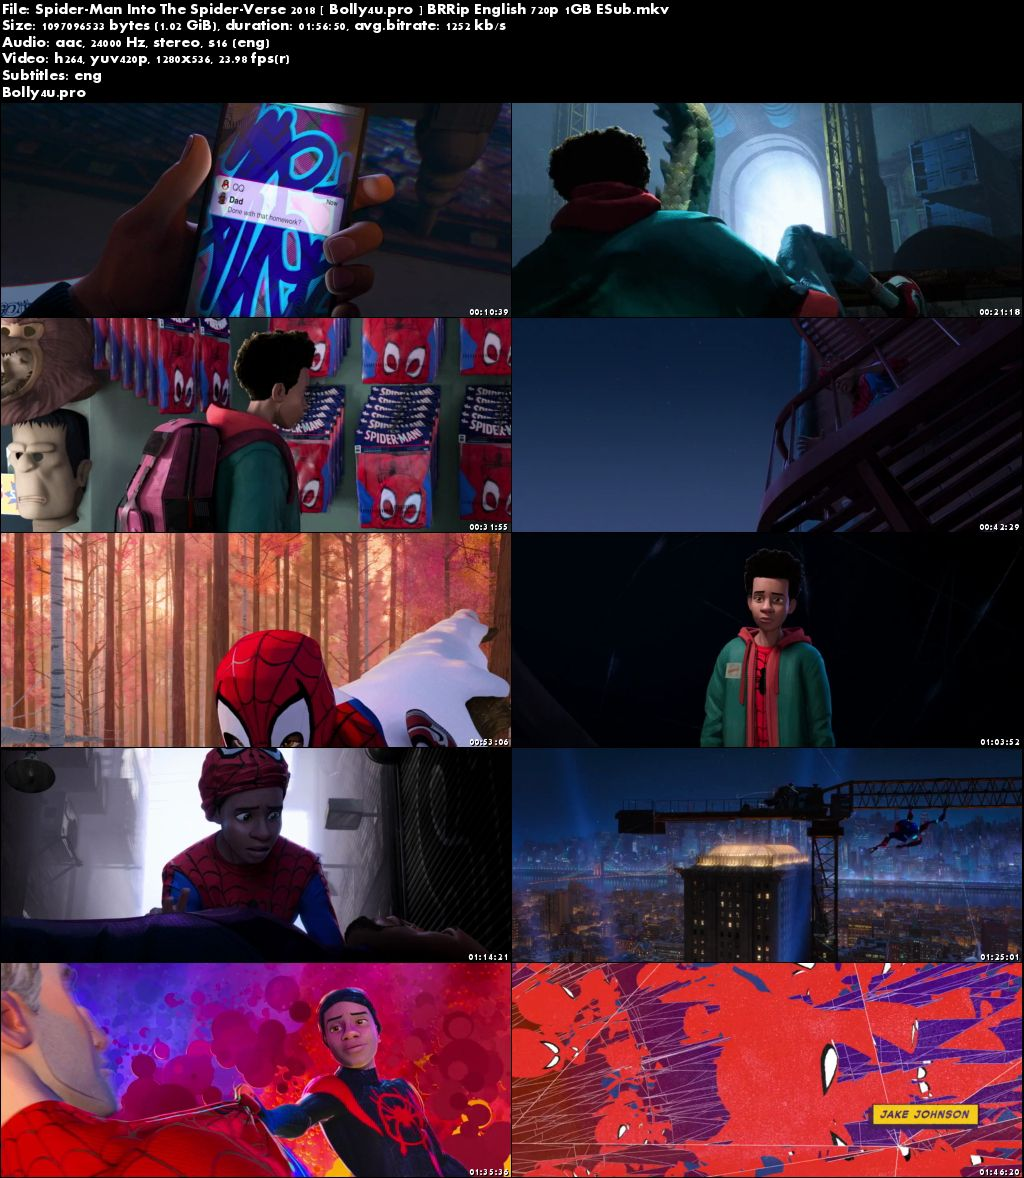 Spider-Man Into the Spider-Verse 2018 BRRip 1GB English 720p ESub Download